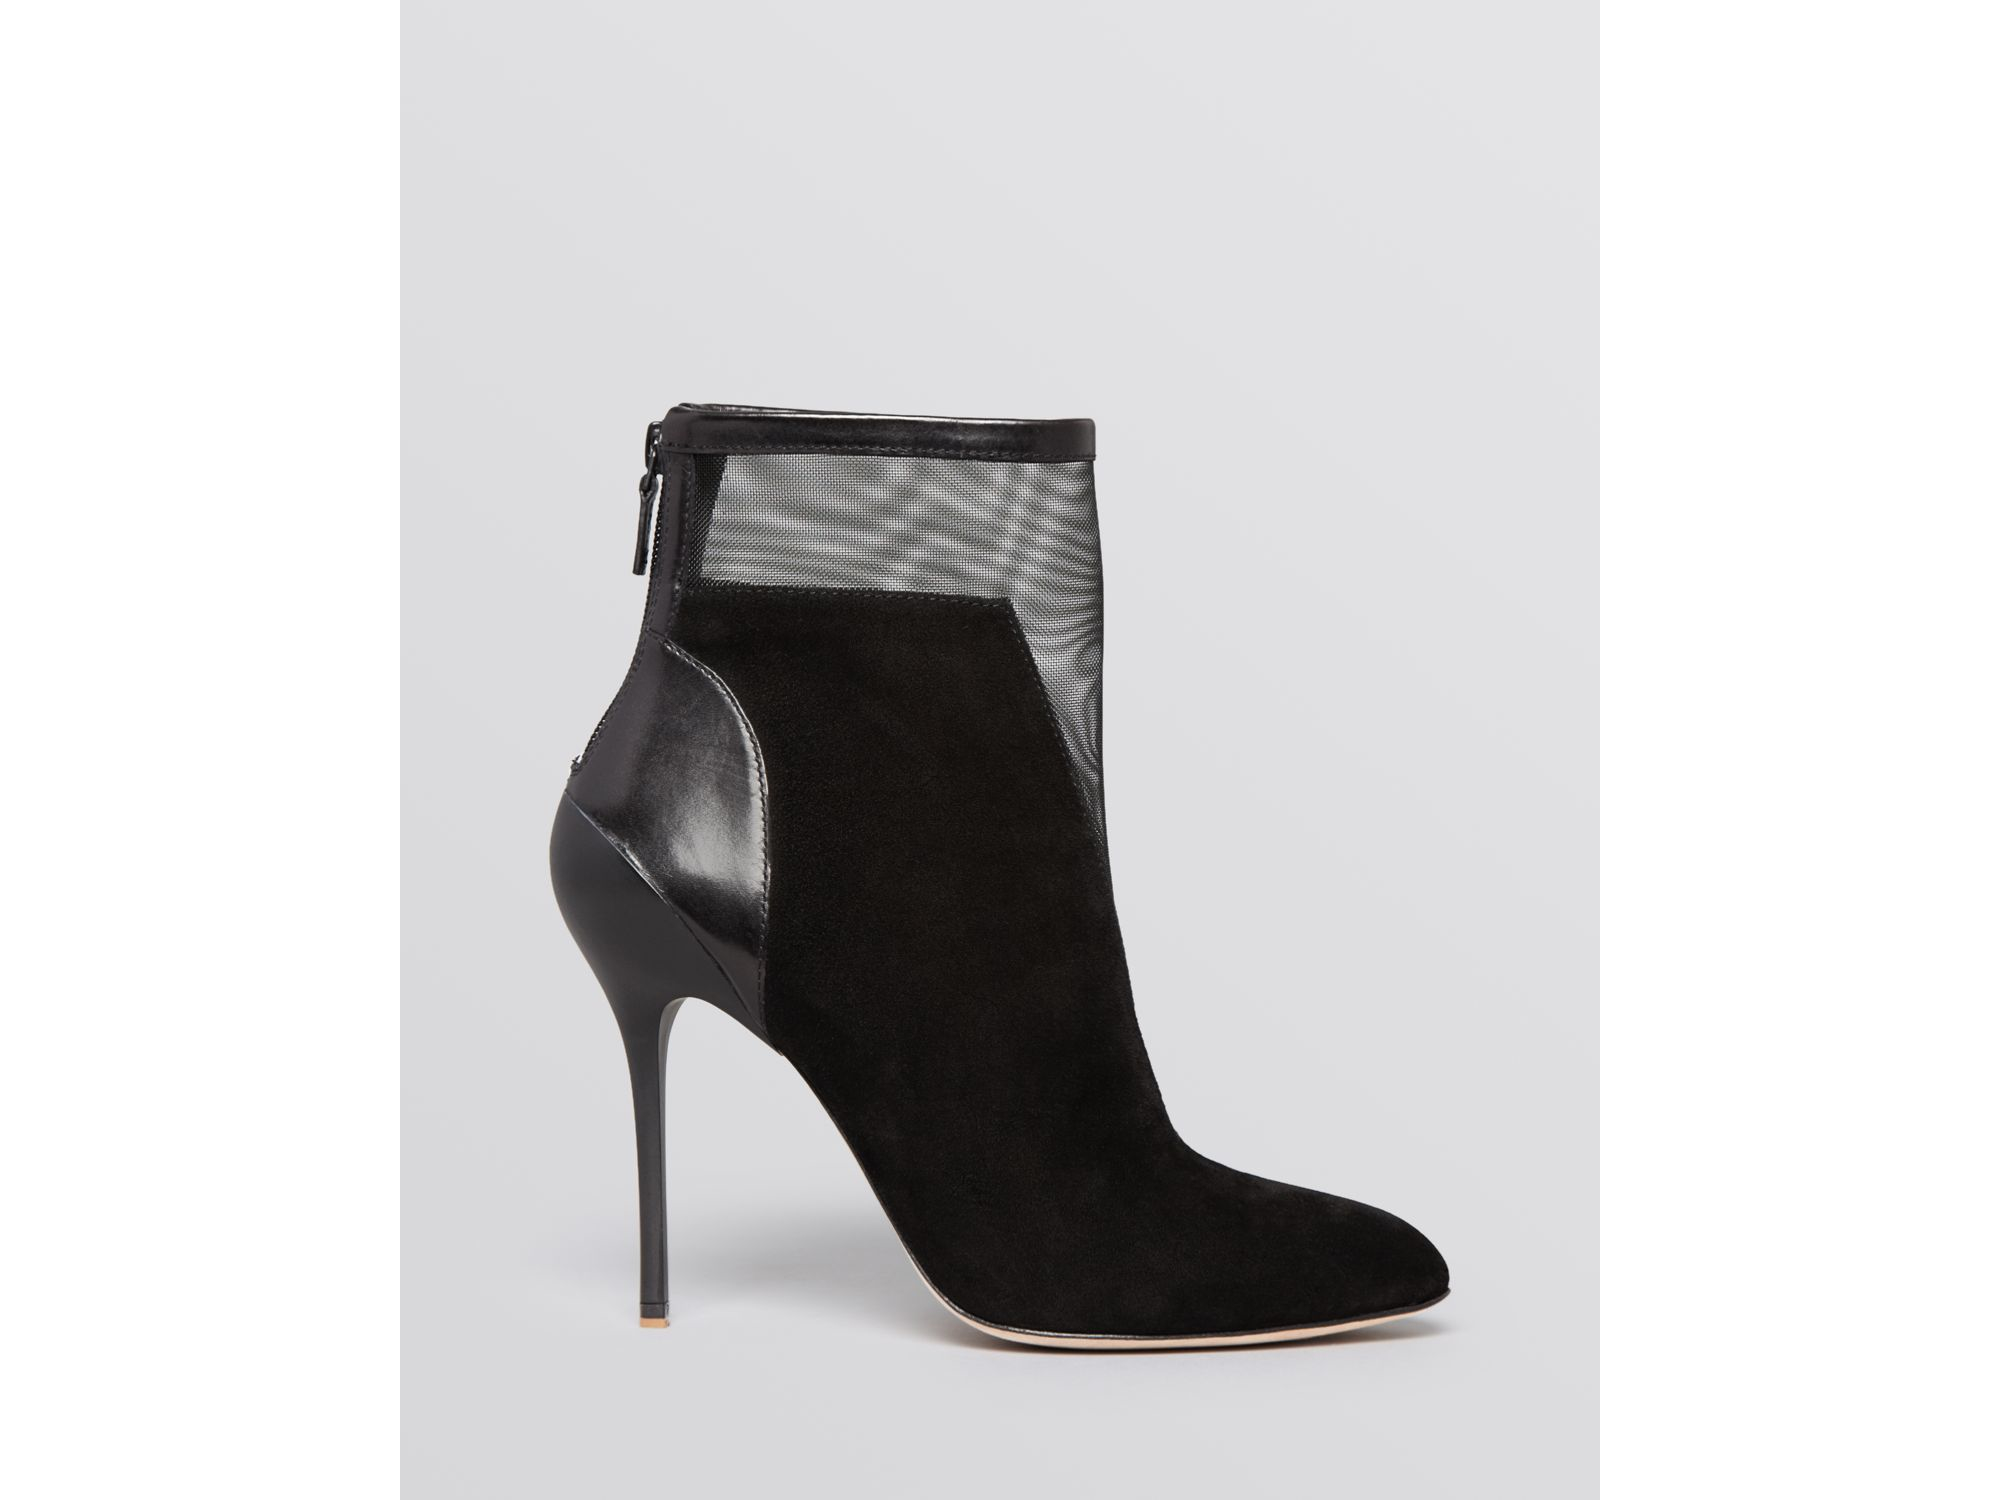 buy cheap outlet store Elie Tahari Suede Pointed-Toe Booties comfortable online professional xEXth